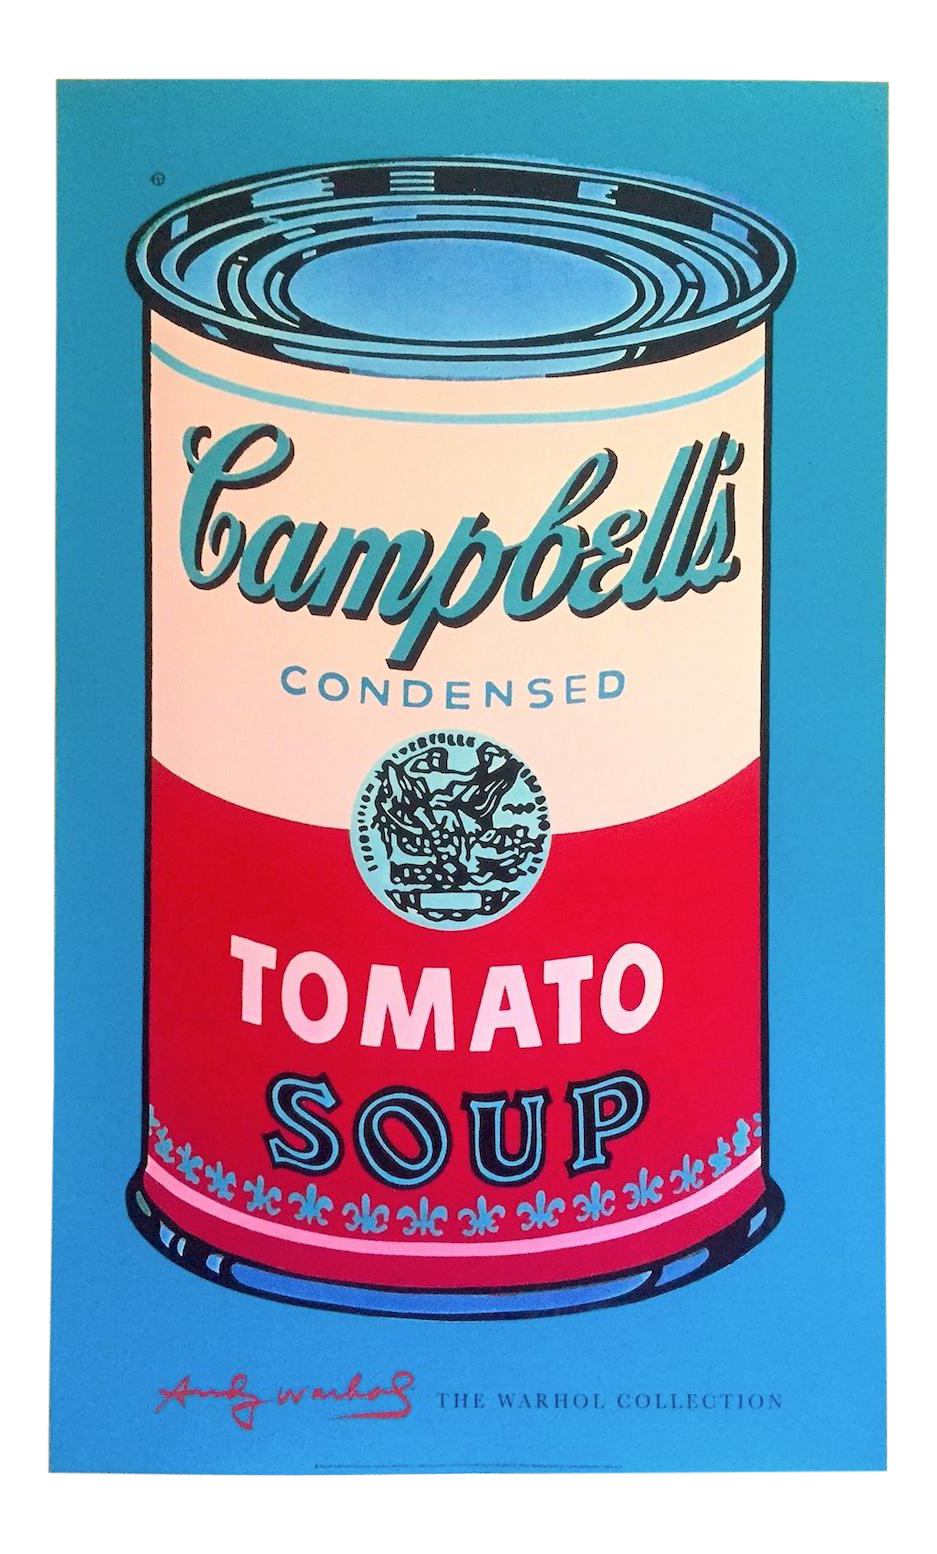 Andy Warhol Foundation Lithograph Print Pop Art Poster Campbell S Soup Can Red Pink 1965 Pop Art Posters Campbell S Soup Cans Andy Warhol Art